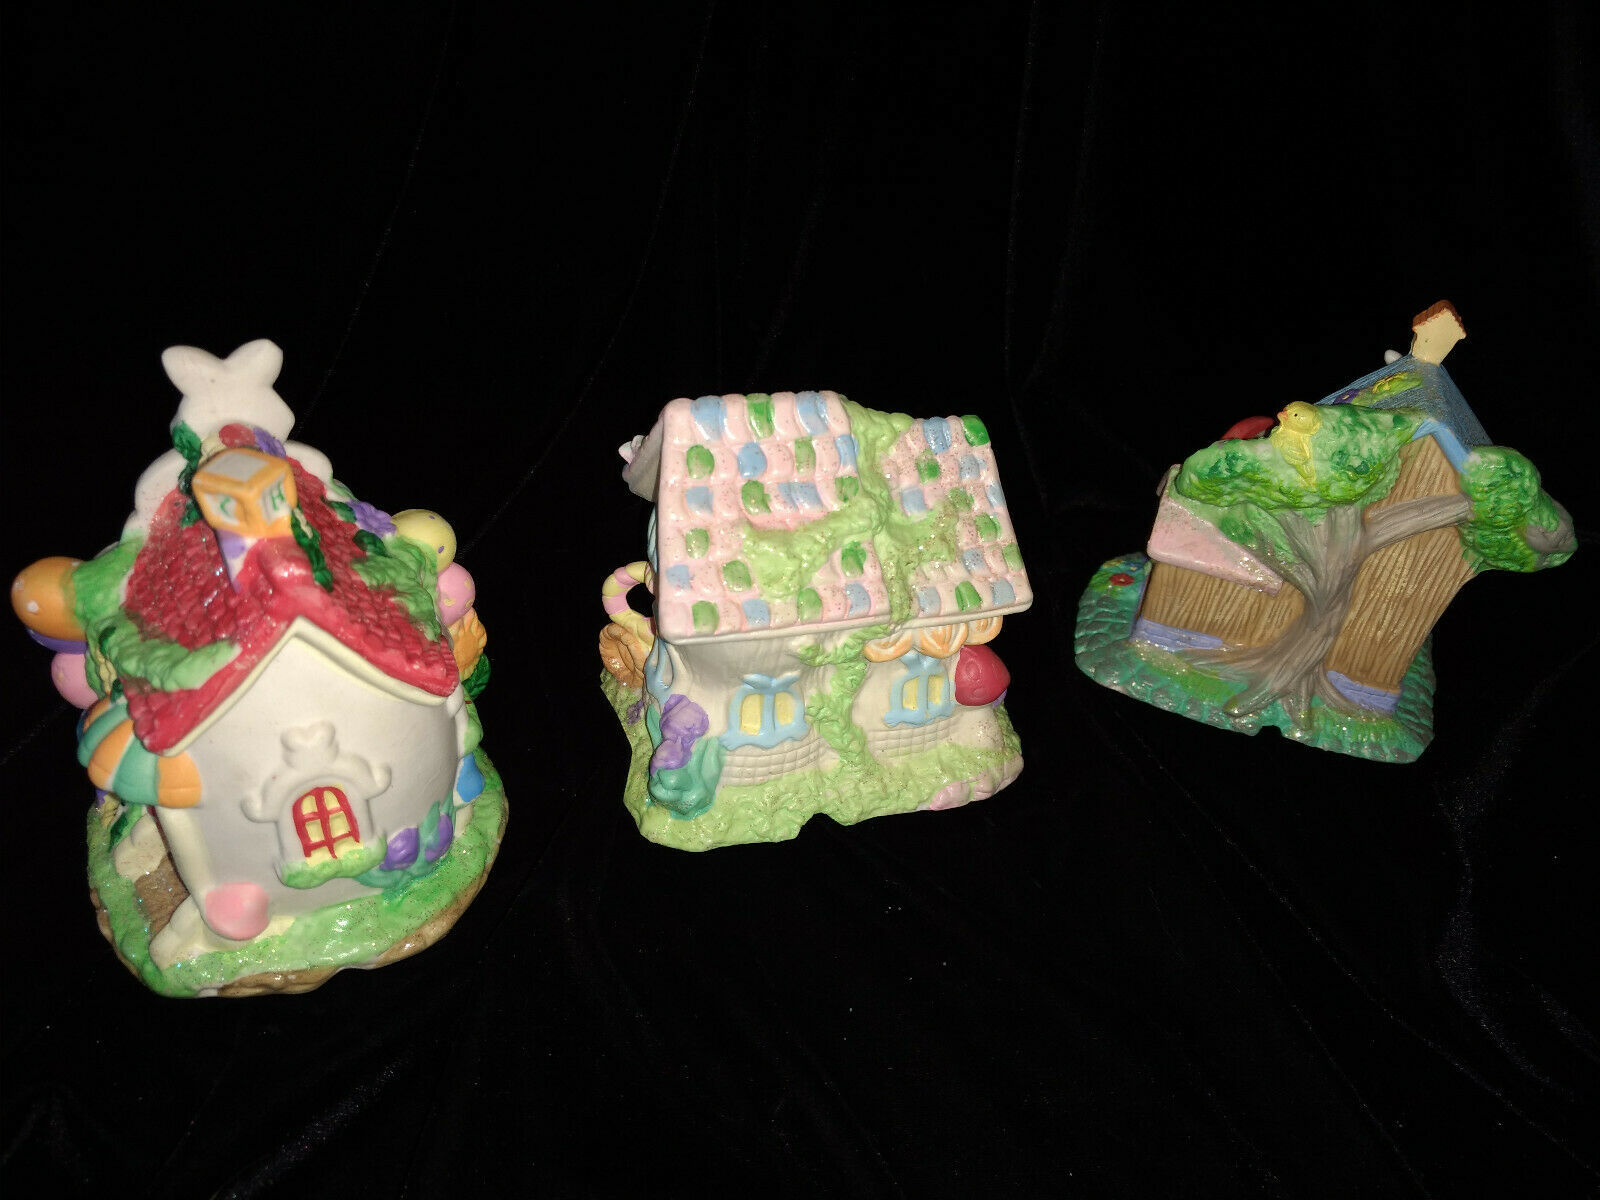 Hoppy Hollow Easter Village Ceramic Houses Set of Three (Lot #4) image 2